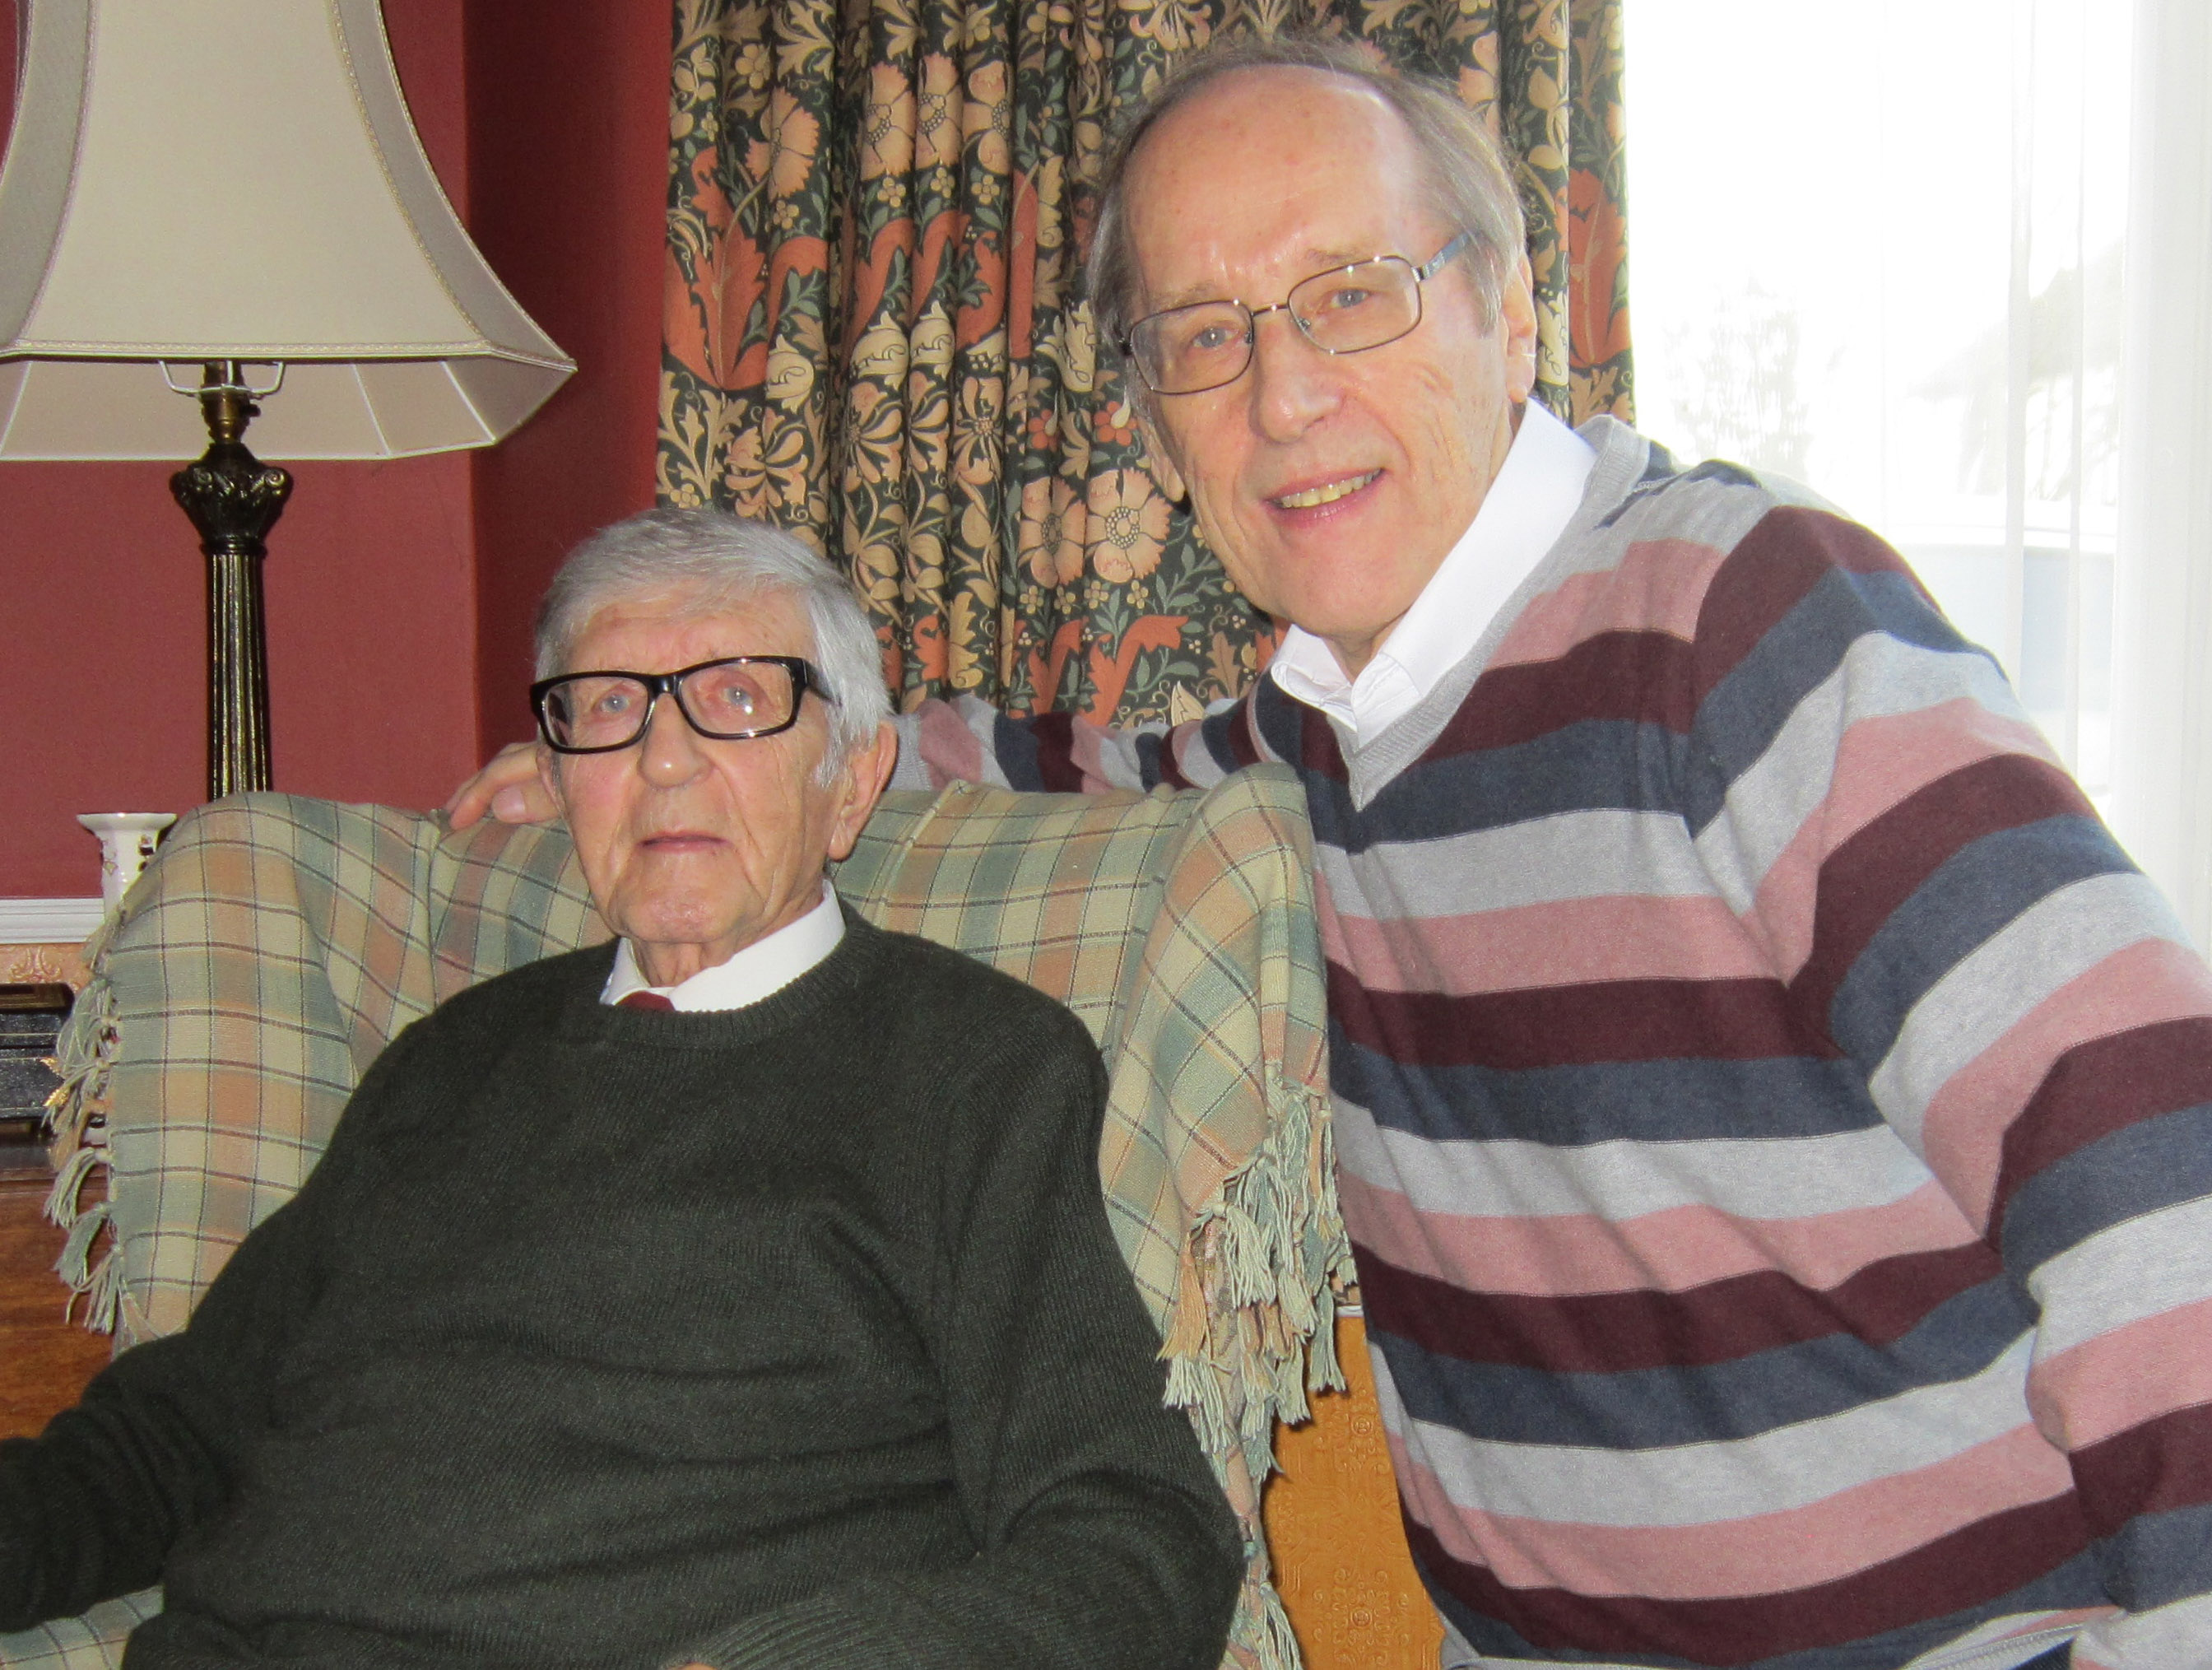 Veteran British comic artist John Gillatt with writer and editor Barrie Tomlinson, January 2014. Photo courtesy Barrie Tomlinson